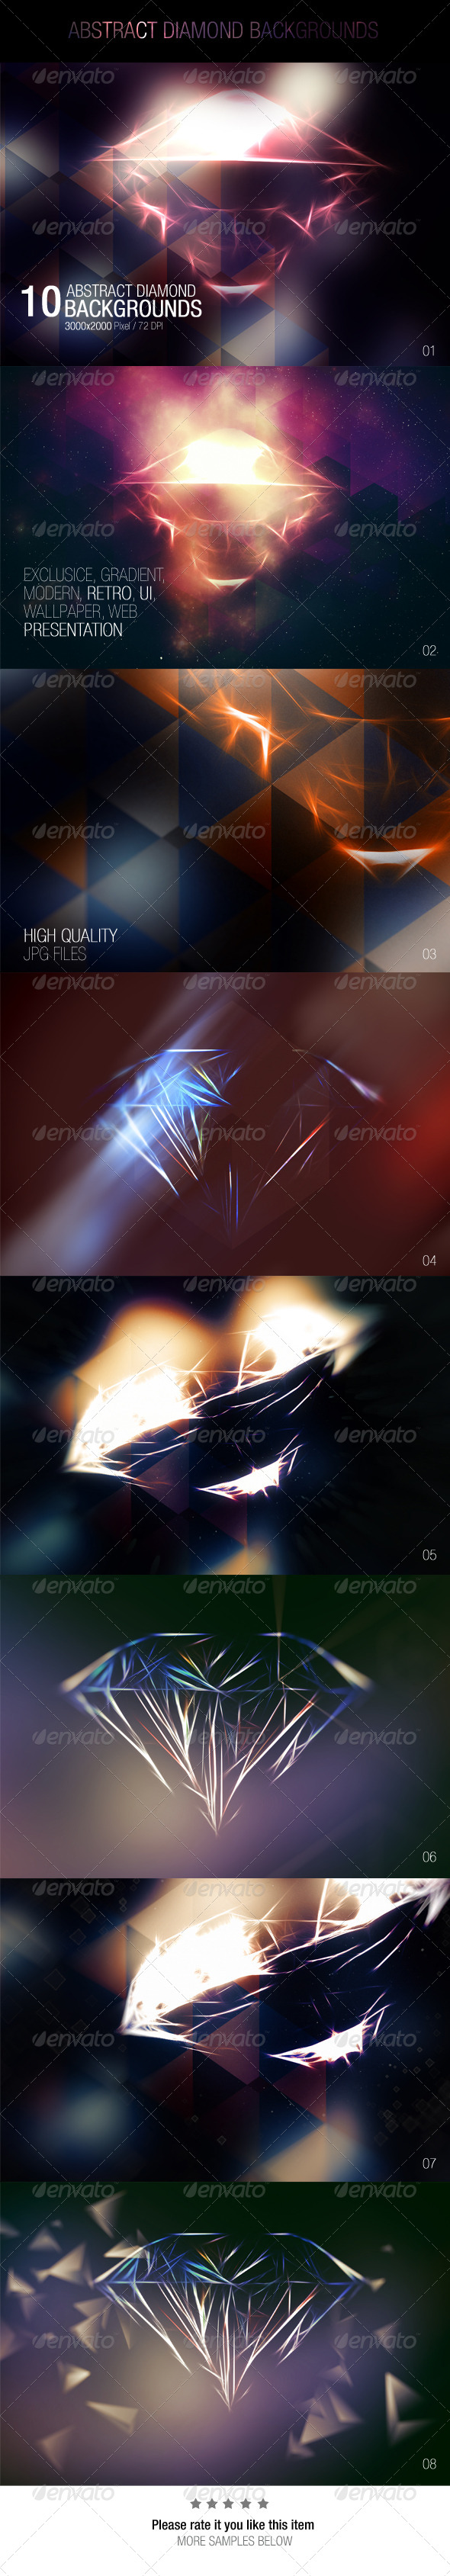 GraphicRiver Abstract Diamond Backgrounds 7620925